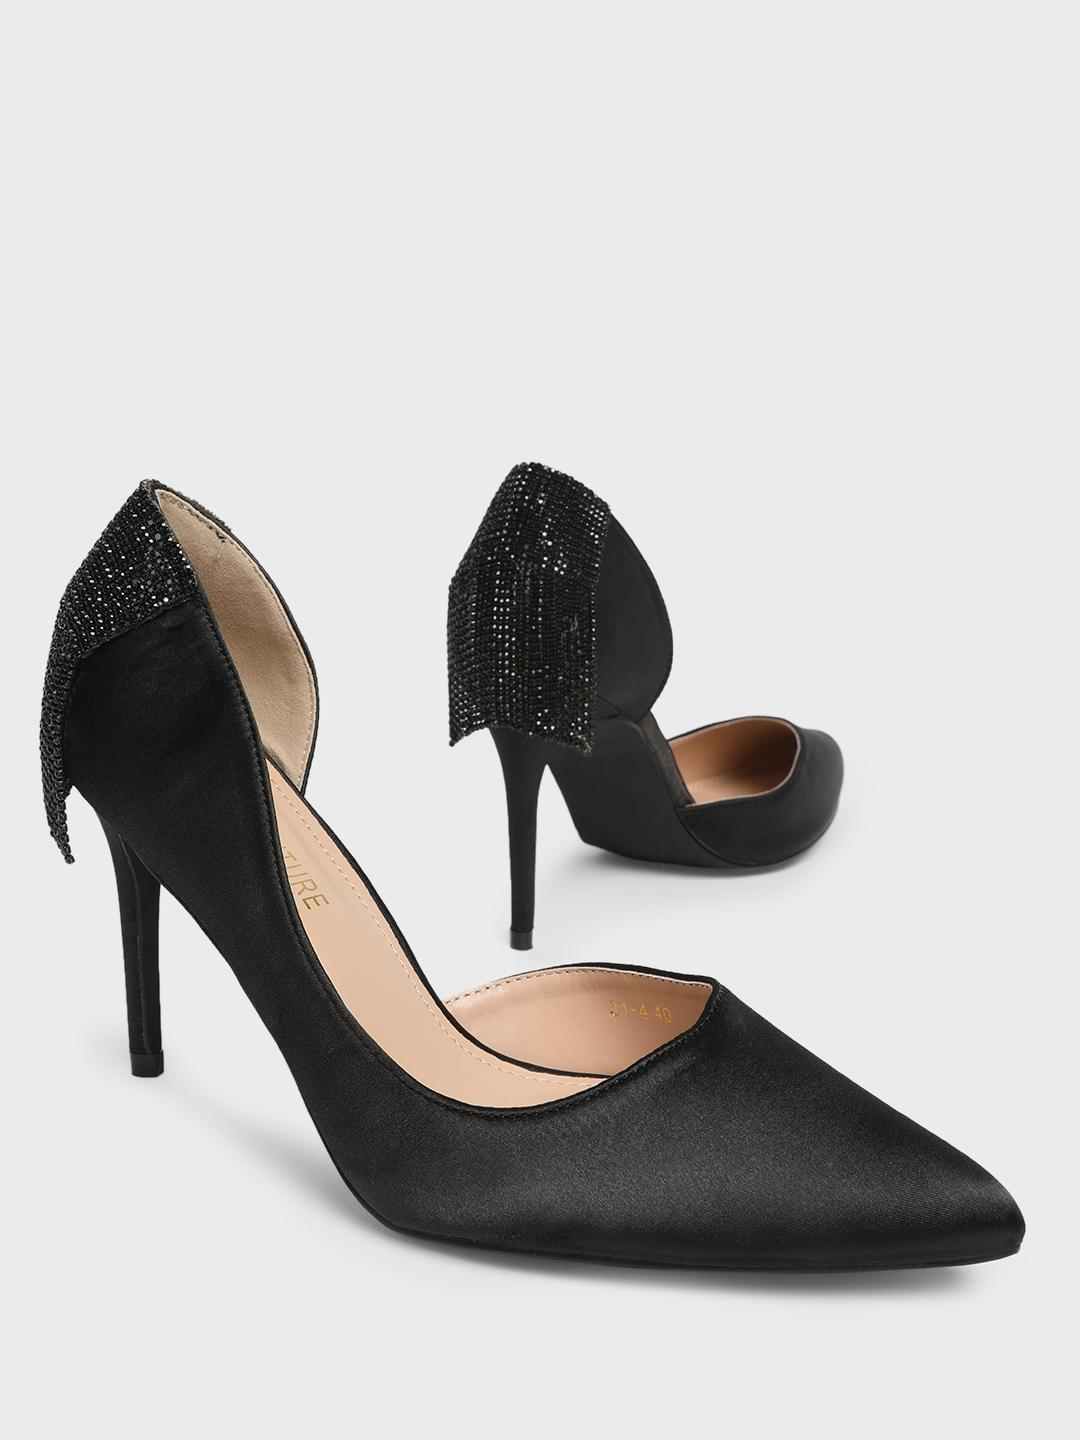 MFT Couture Black MY FOOTCOUTURE Back Embellished Heeled Pumps 1